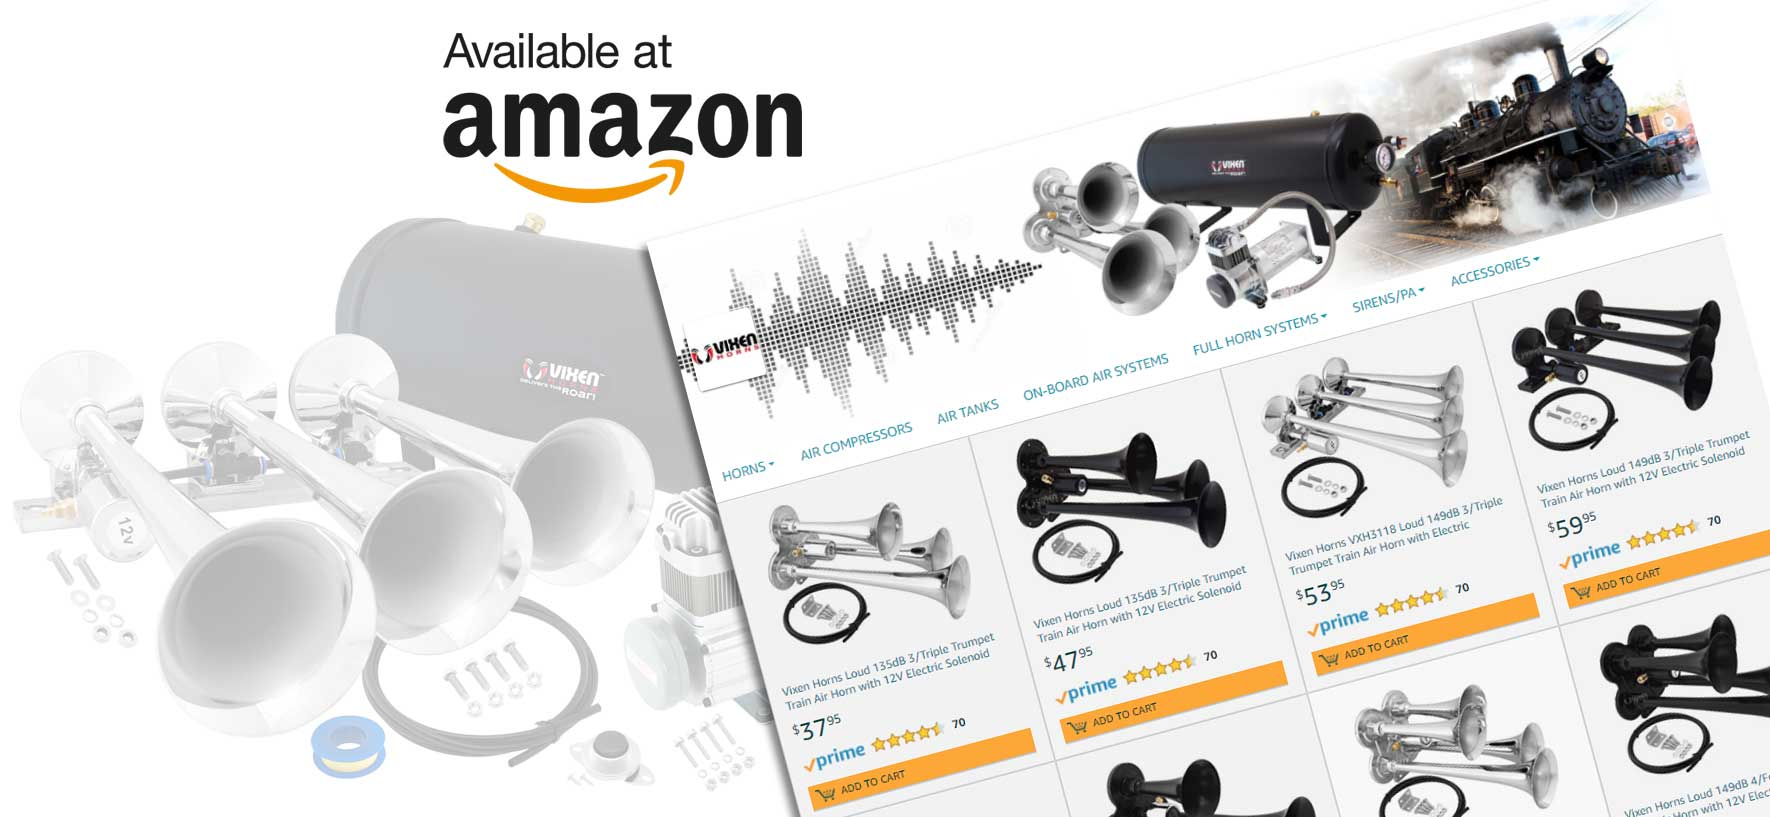 Vixen Horns Amazon Store Launched